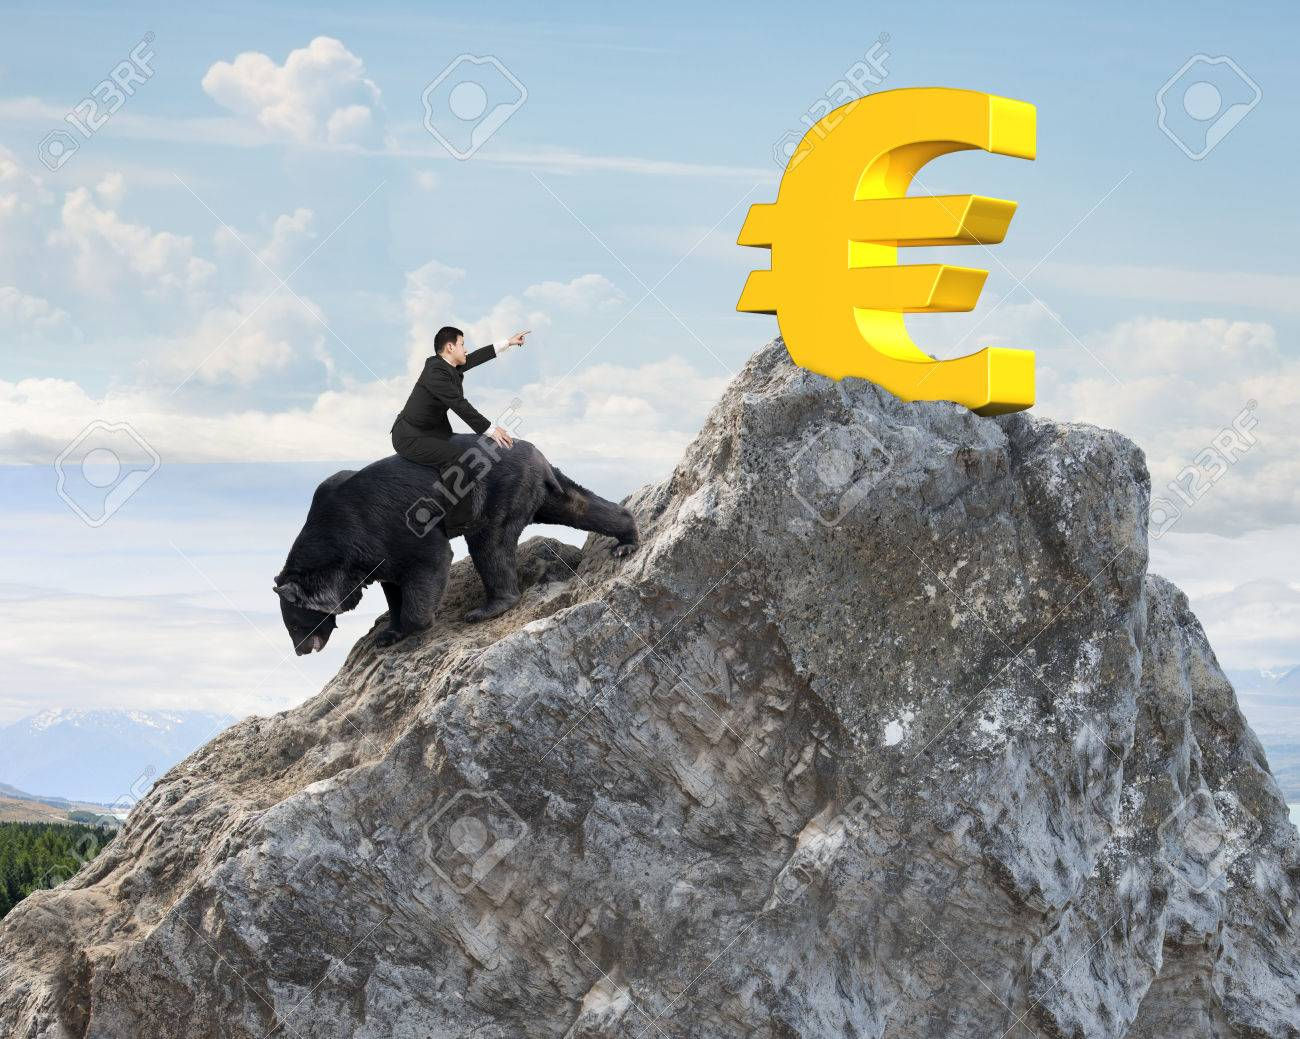 Businessman riding black bear pursuing gold euro symbol on businessman riding black bear pursuing gold euro symbol on mountain peak with sunlight clouds background biocorpaavc Images